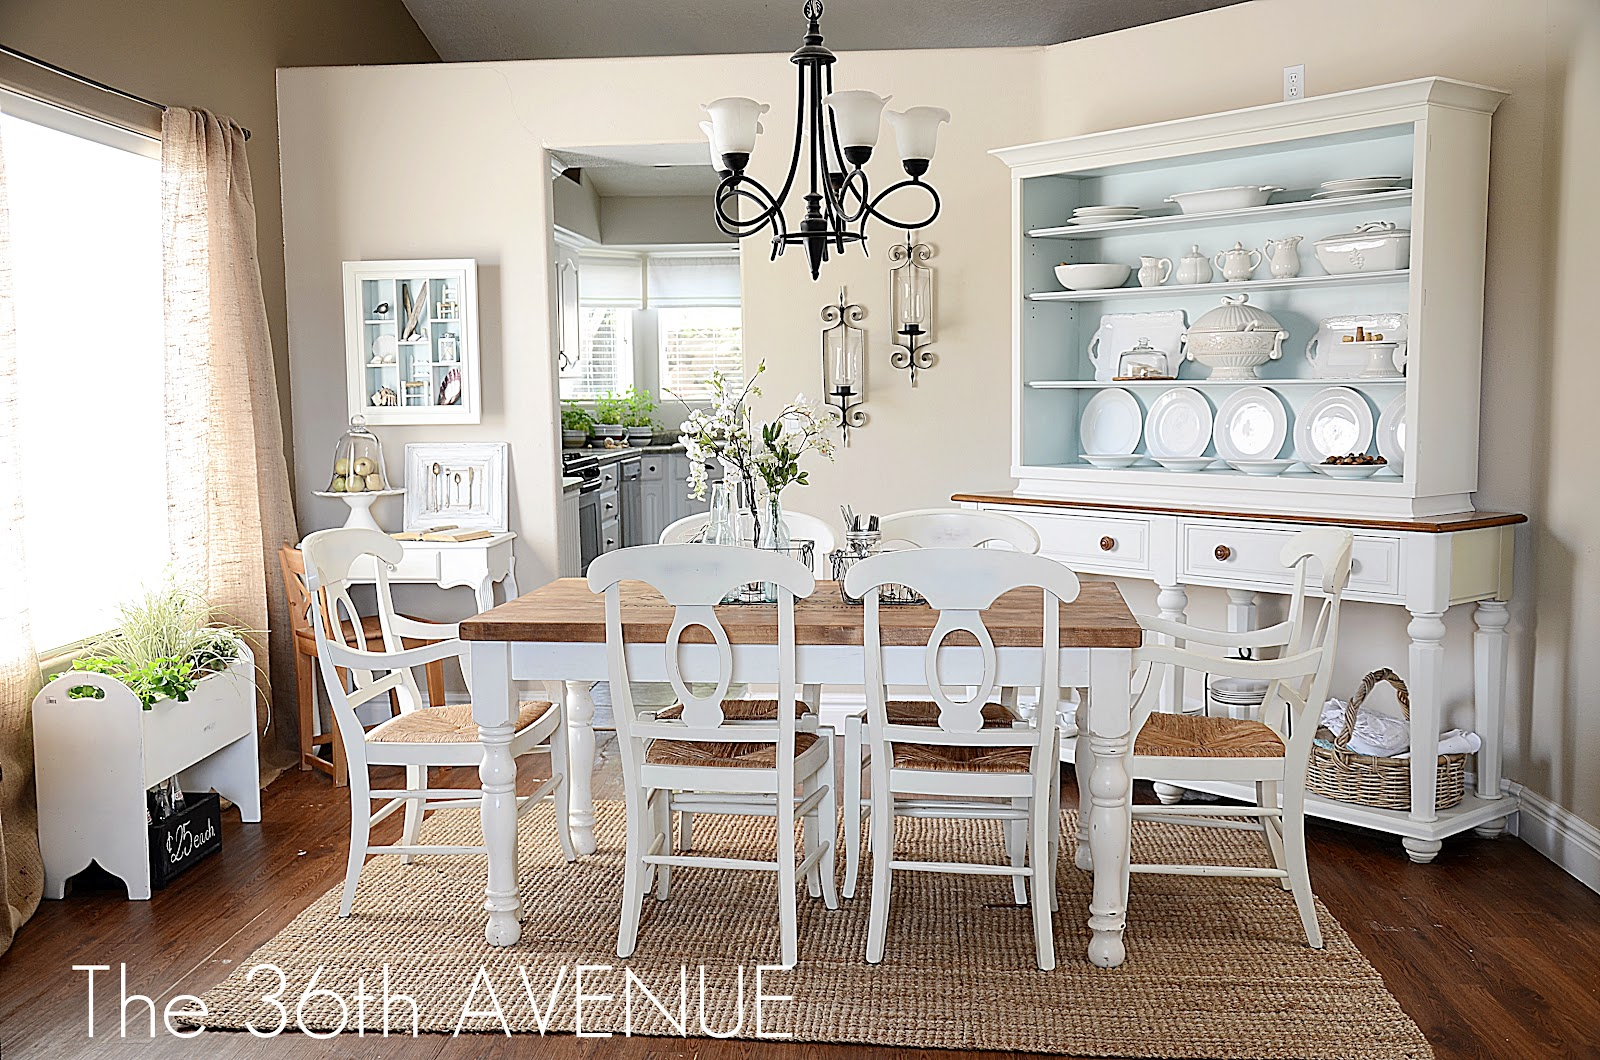 Dining Room Reveal and Design Tips  The 36th AVENUE